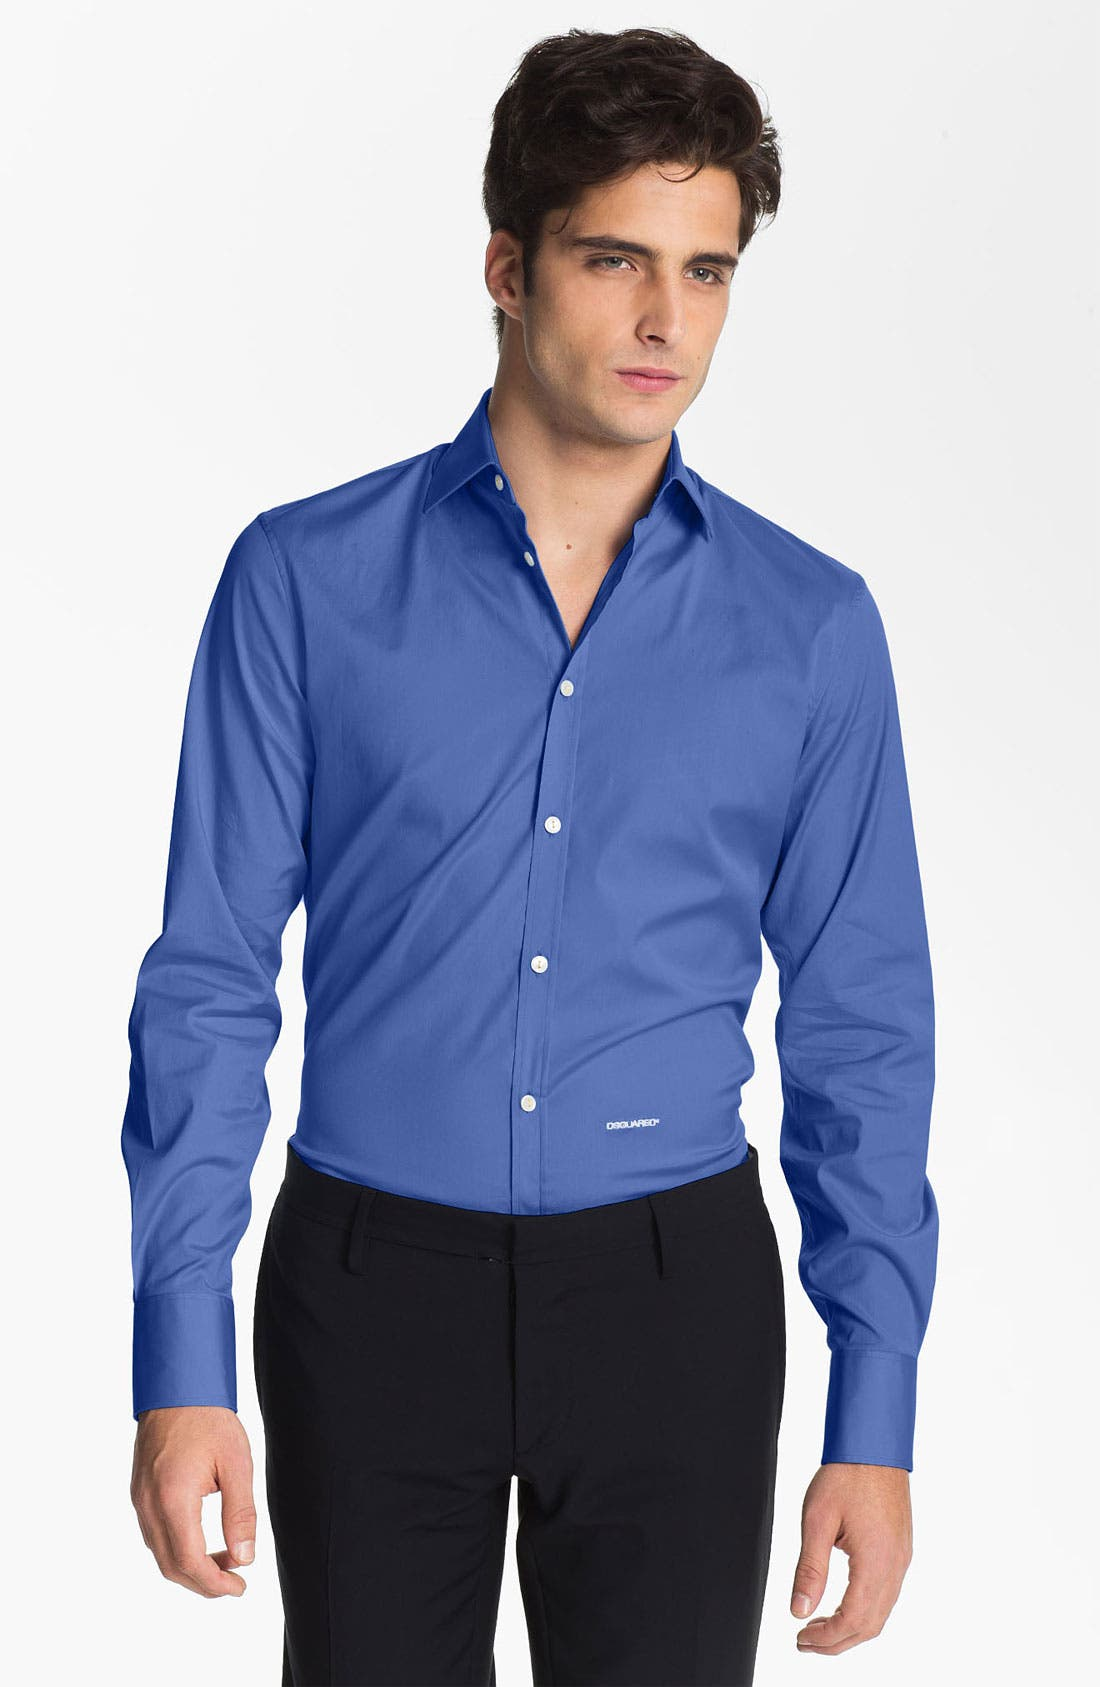 Alternate Image 1 Selected - Dsquared2 'Dean Dan' Stretch Cotton Dress Shirt